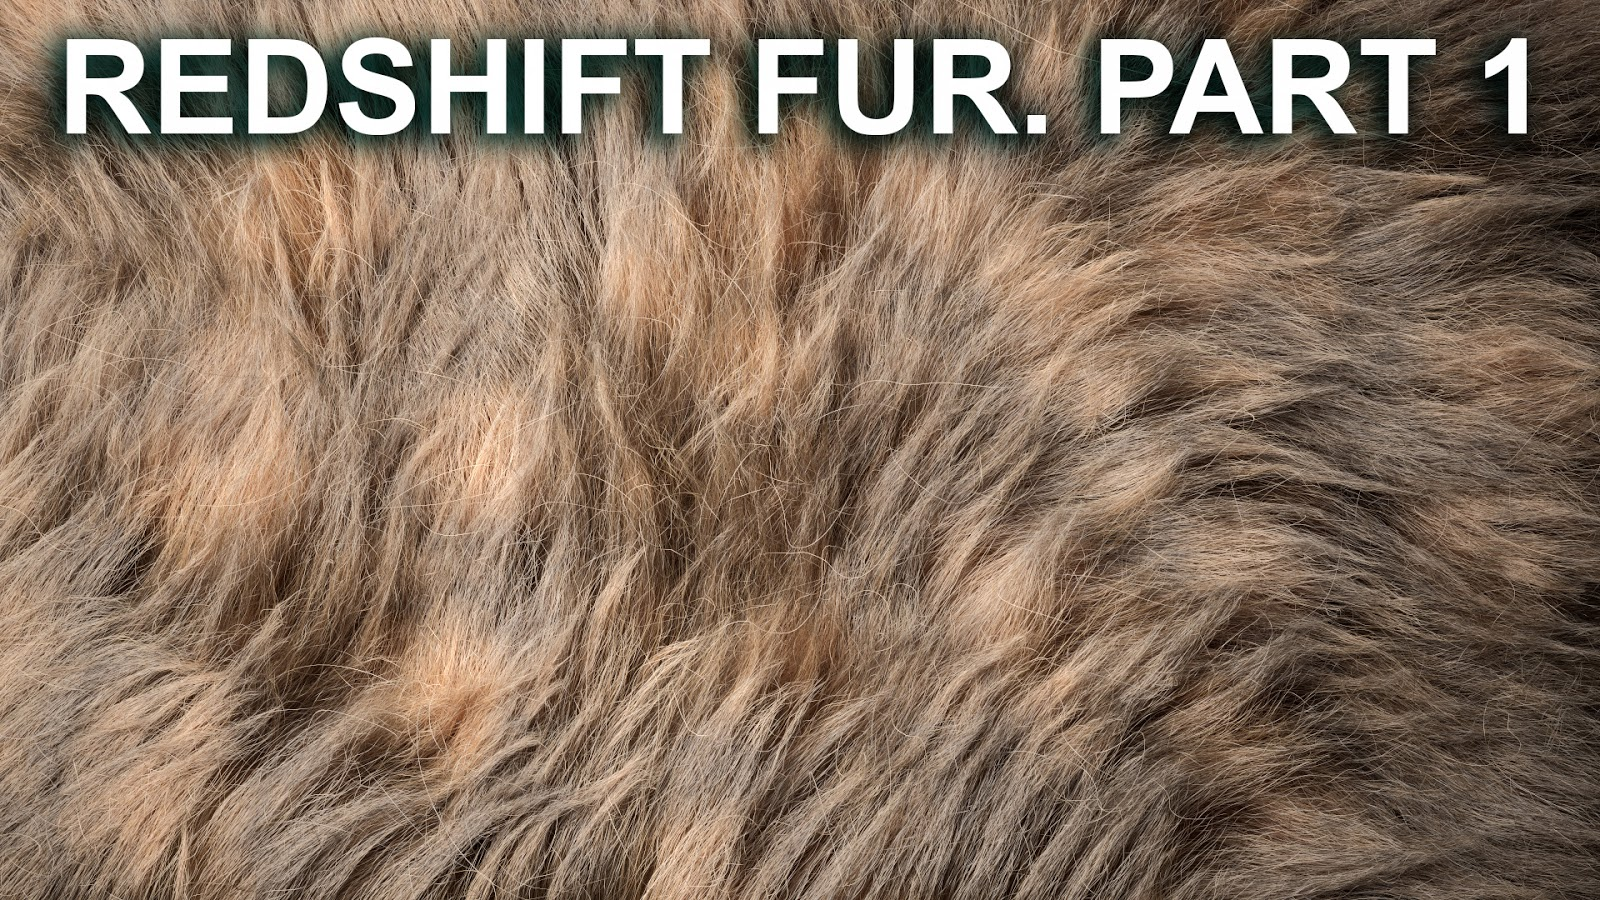 redshift_fur_part1.jpg